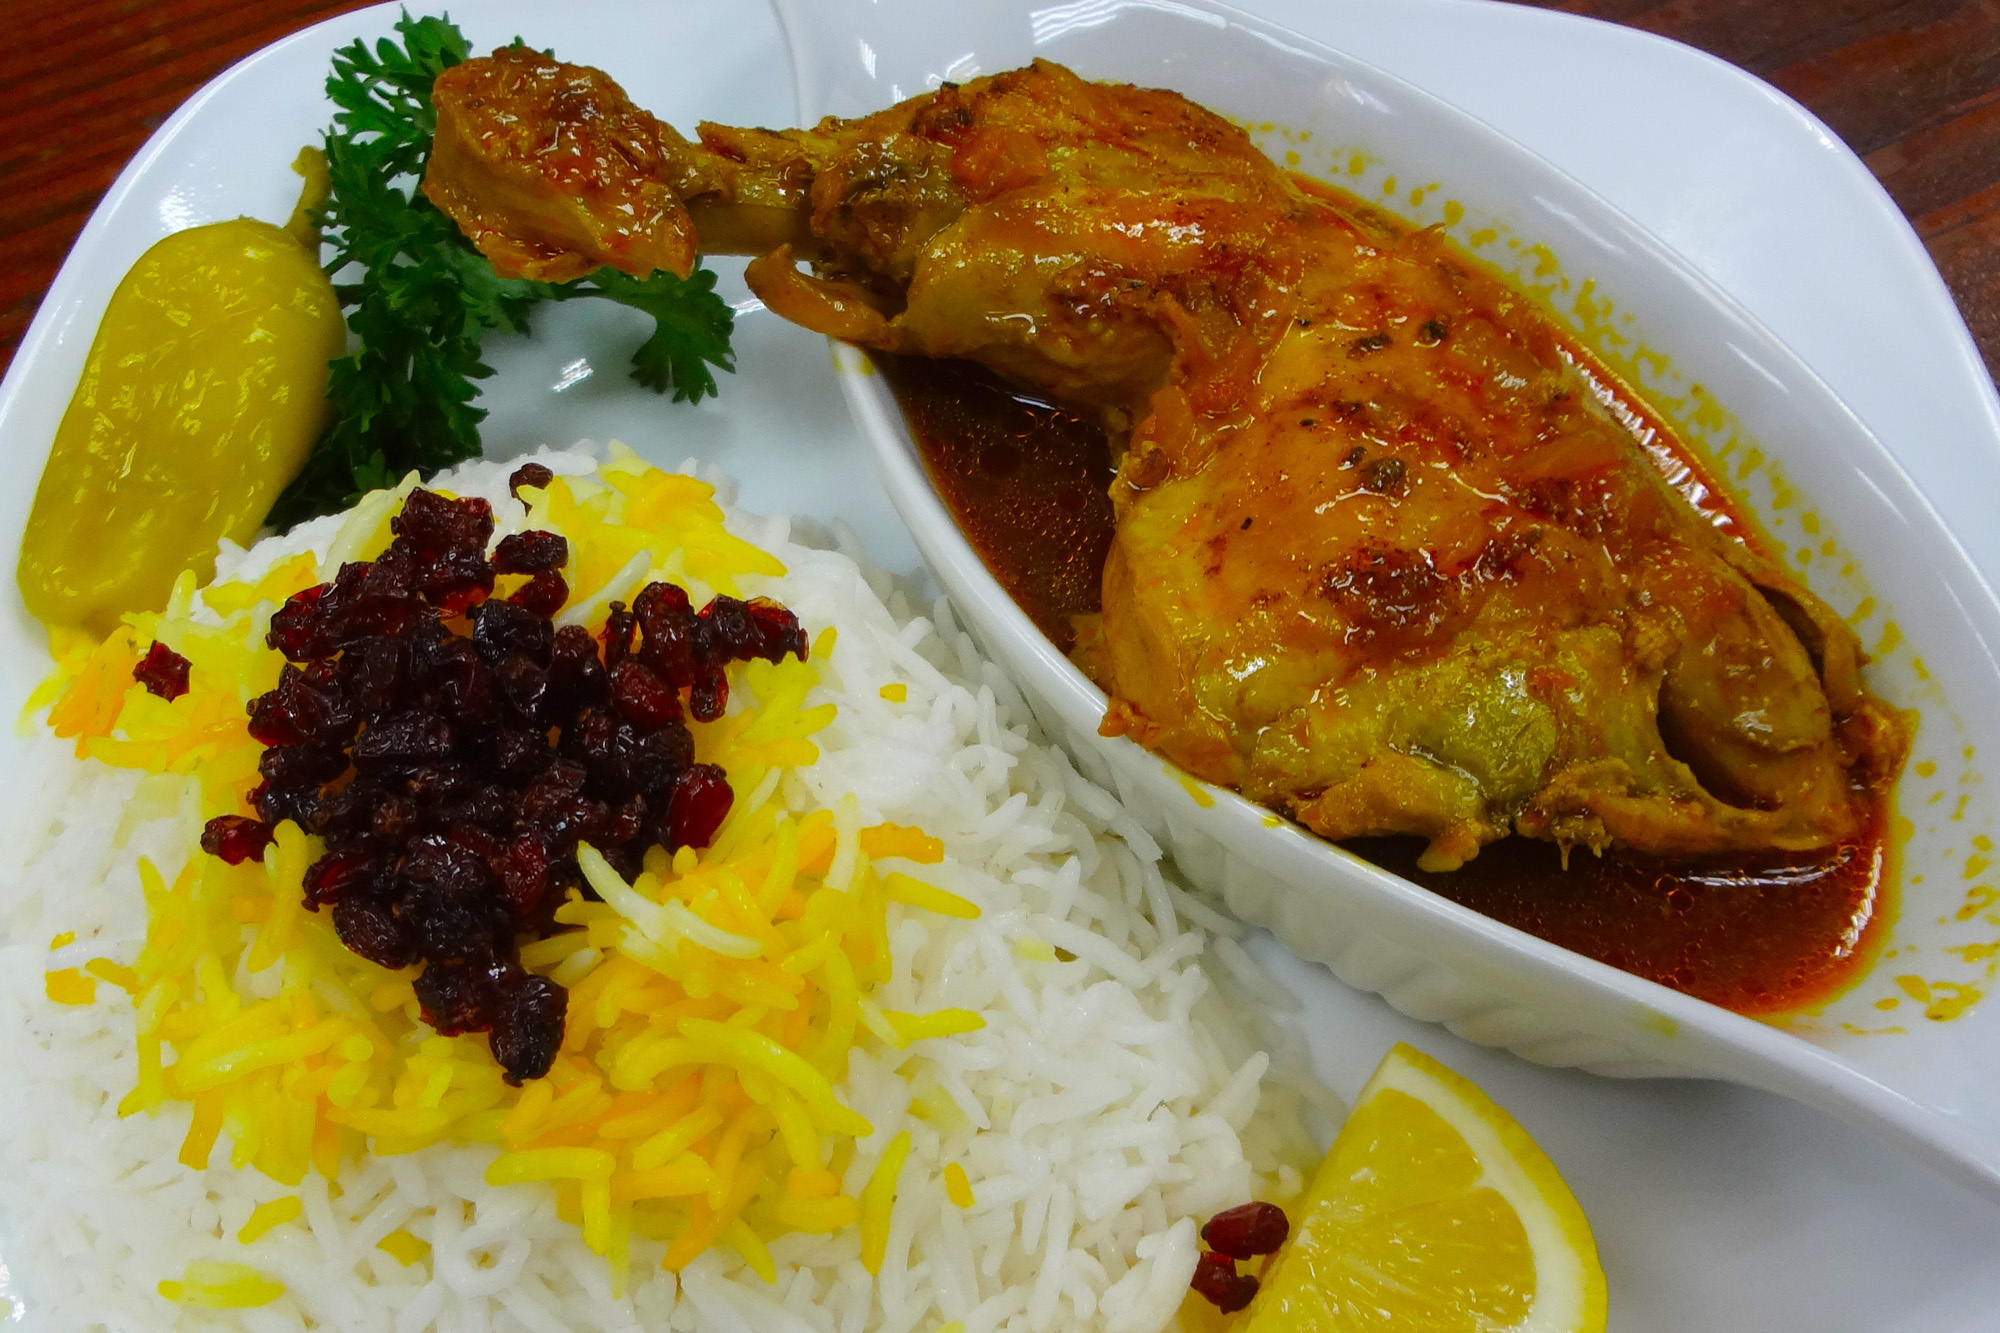 Cholo Morgh with Zereshk is Barberry rice mix served with marinated Chicken Leg at Sahel Persian Restaurant